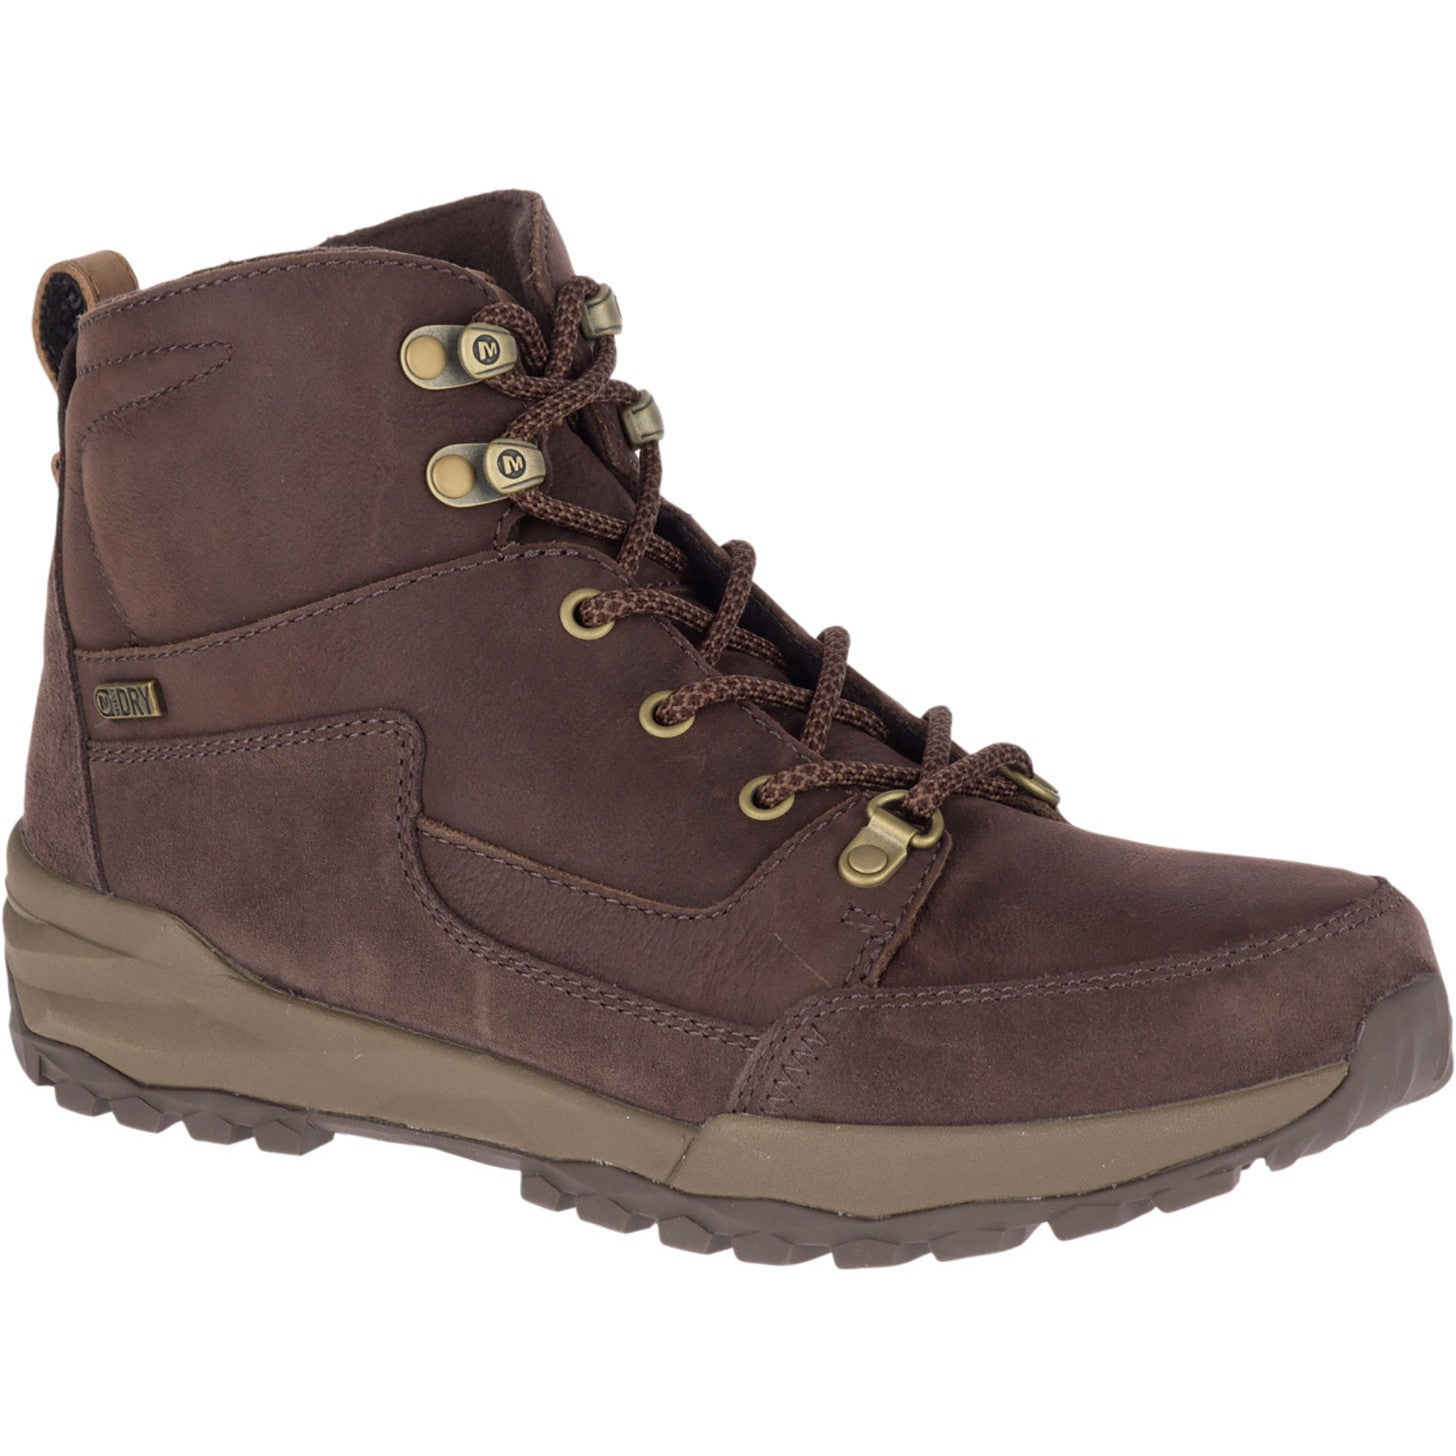 5387c5171e Merrell Icepack Lace Up Ladies Boots from Fitness Footwear